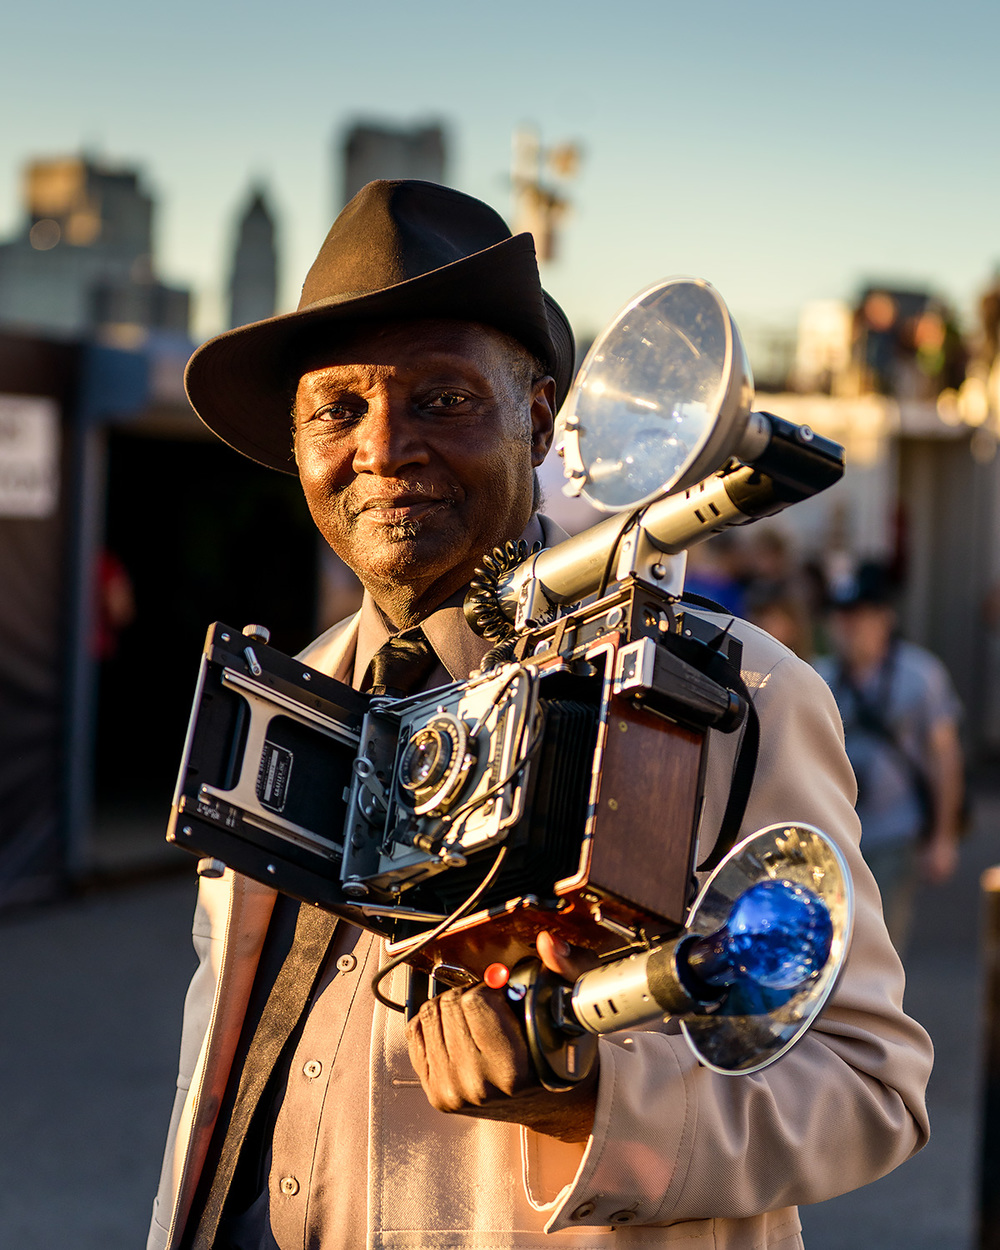 The famous Street Photographer Louis Mendes. You can usually find him photographing people in front of B&H Photo